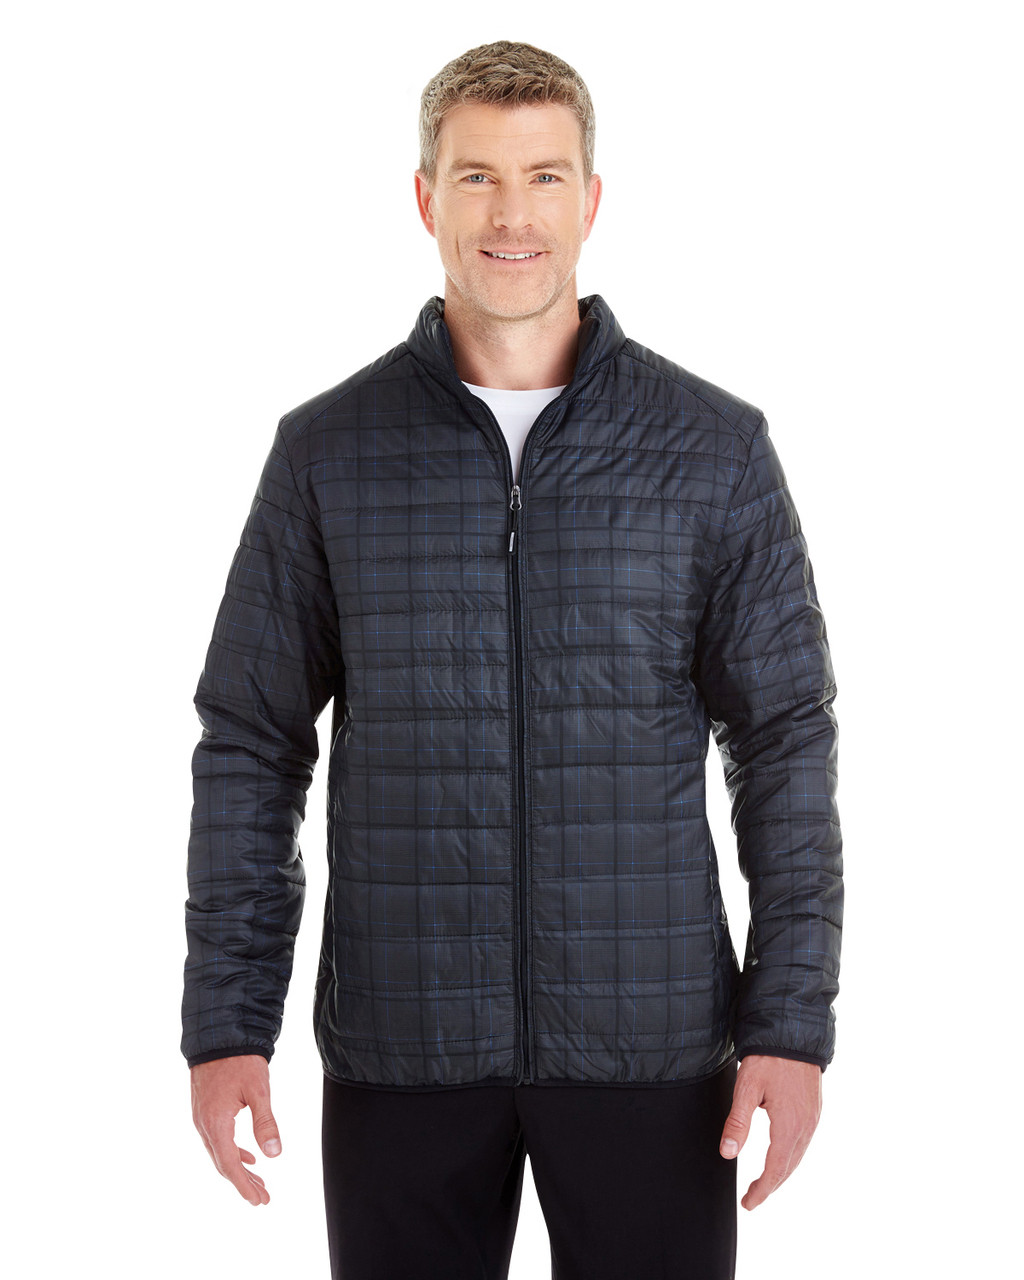 Grid - FRONT - NE701 Ash City - North End Men's Portal Interactive Printed Packable Puffer Jacket | Blankclothing.ca